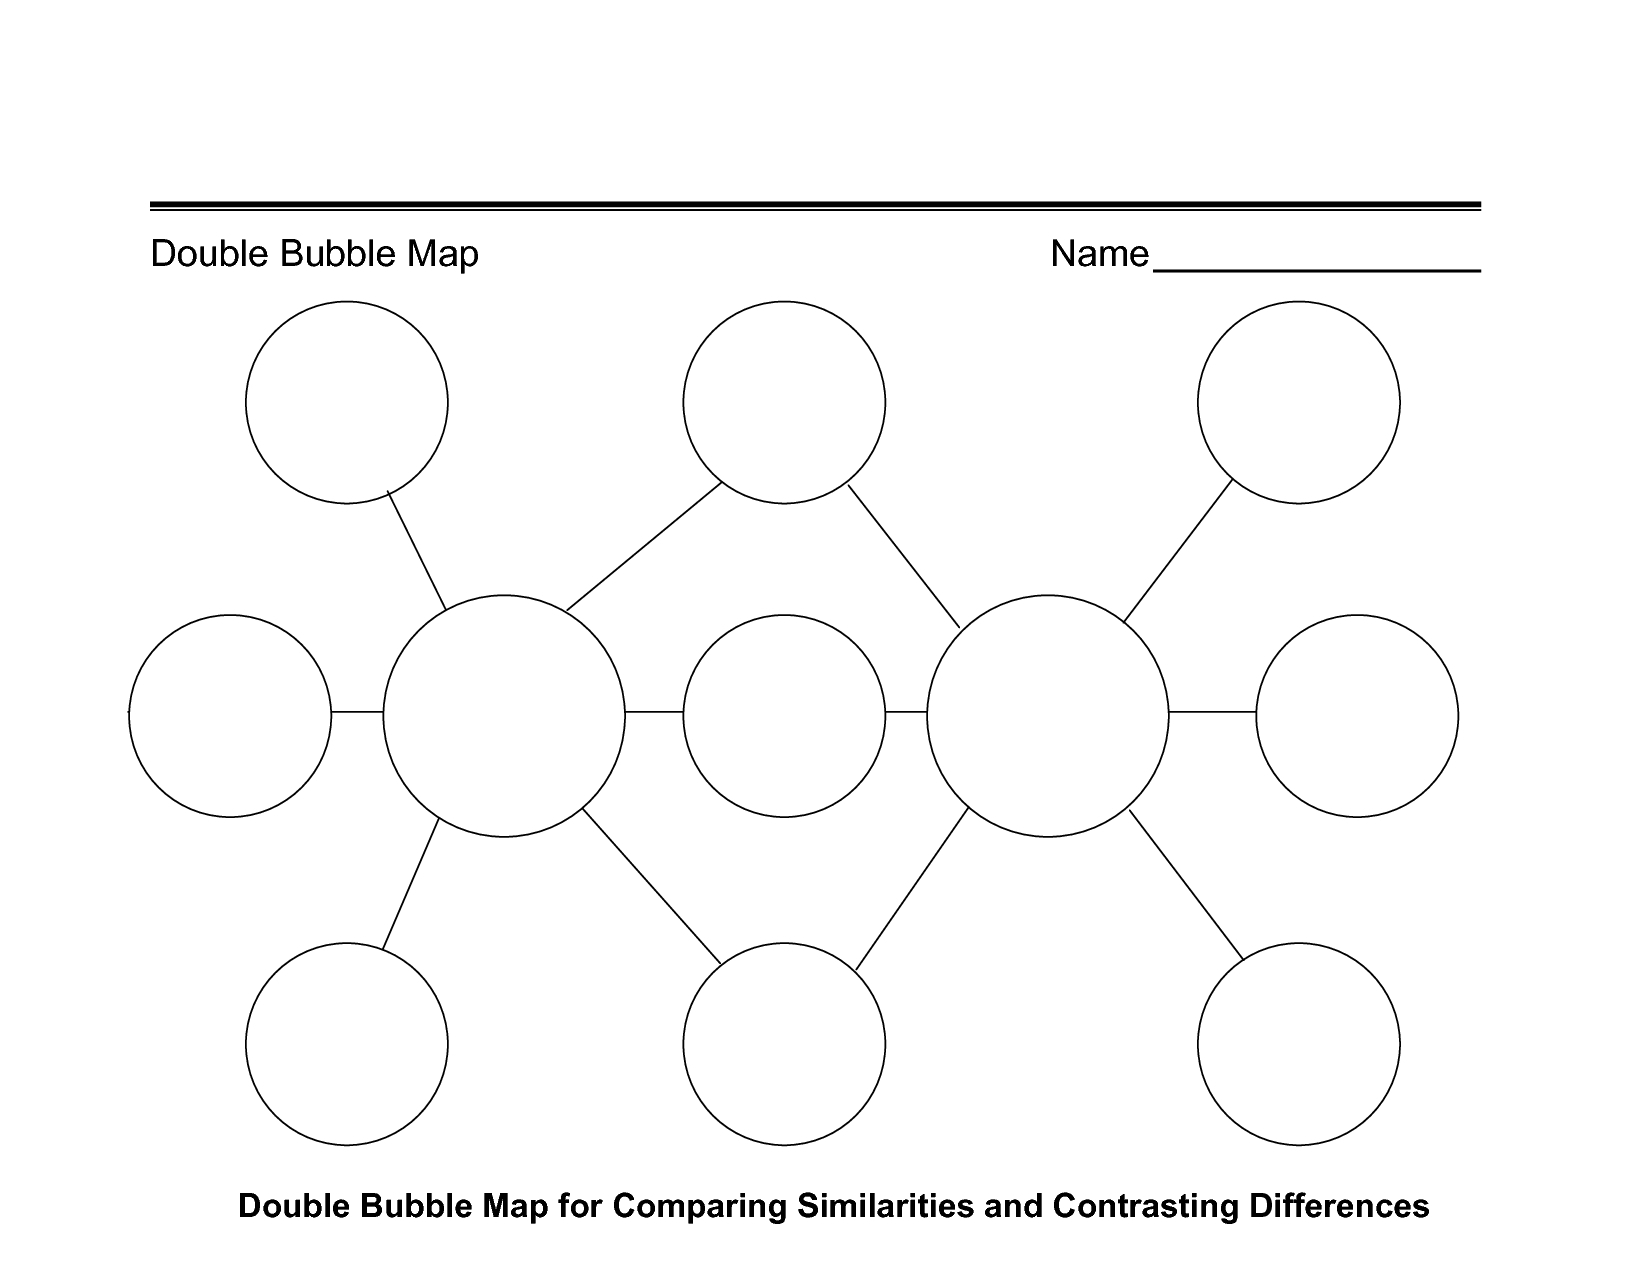 Printable Double Bubble Map | Online Calendar Templates - Double Bubble Map Printable